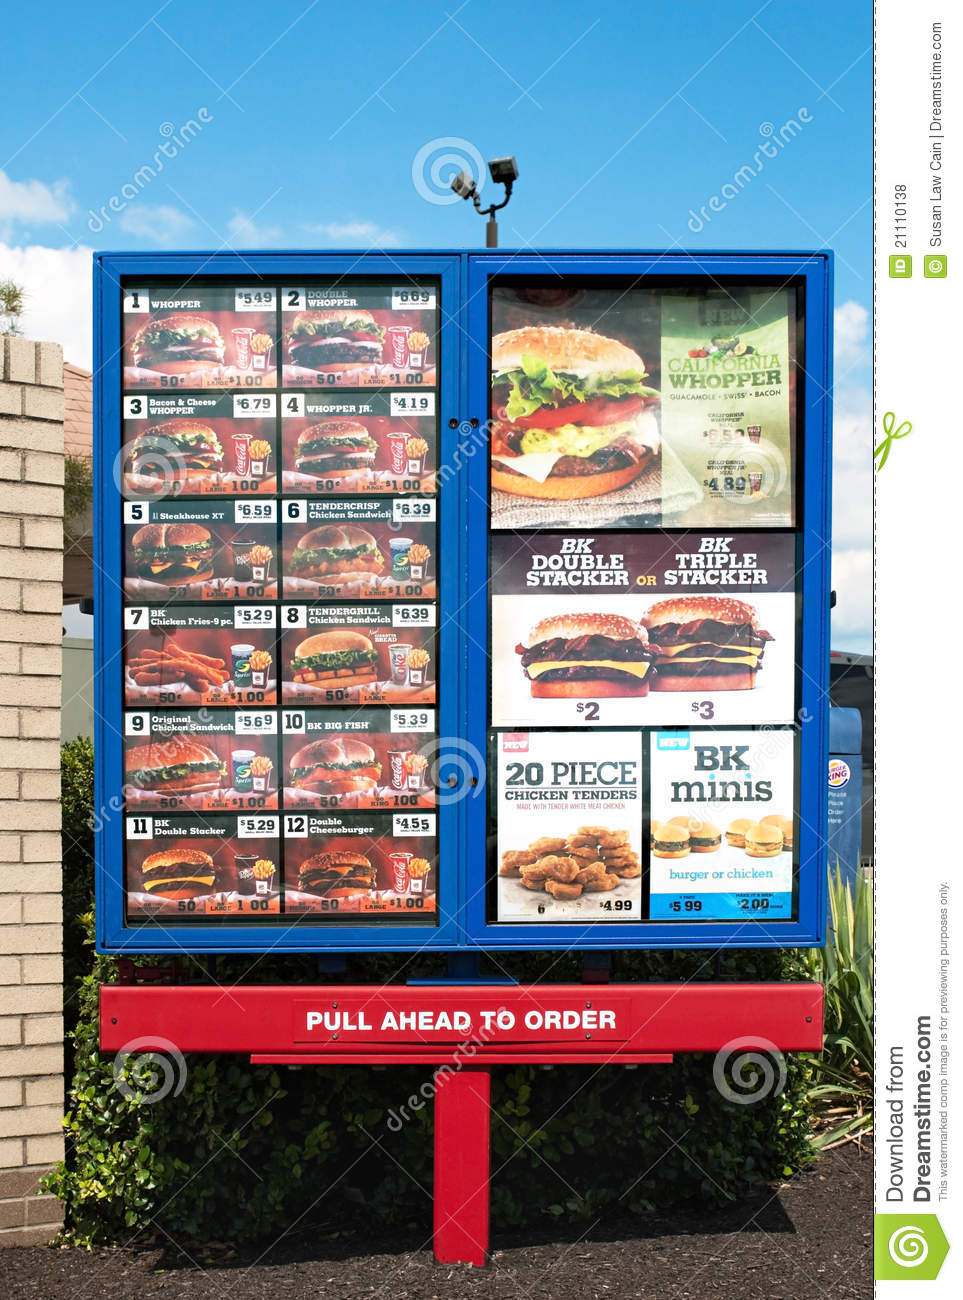 Burger King Restaurant Menu